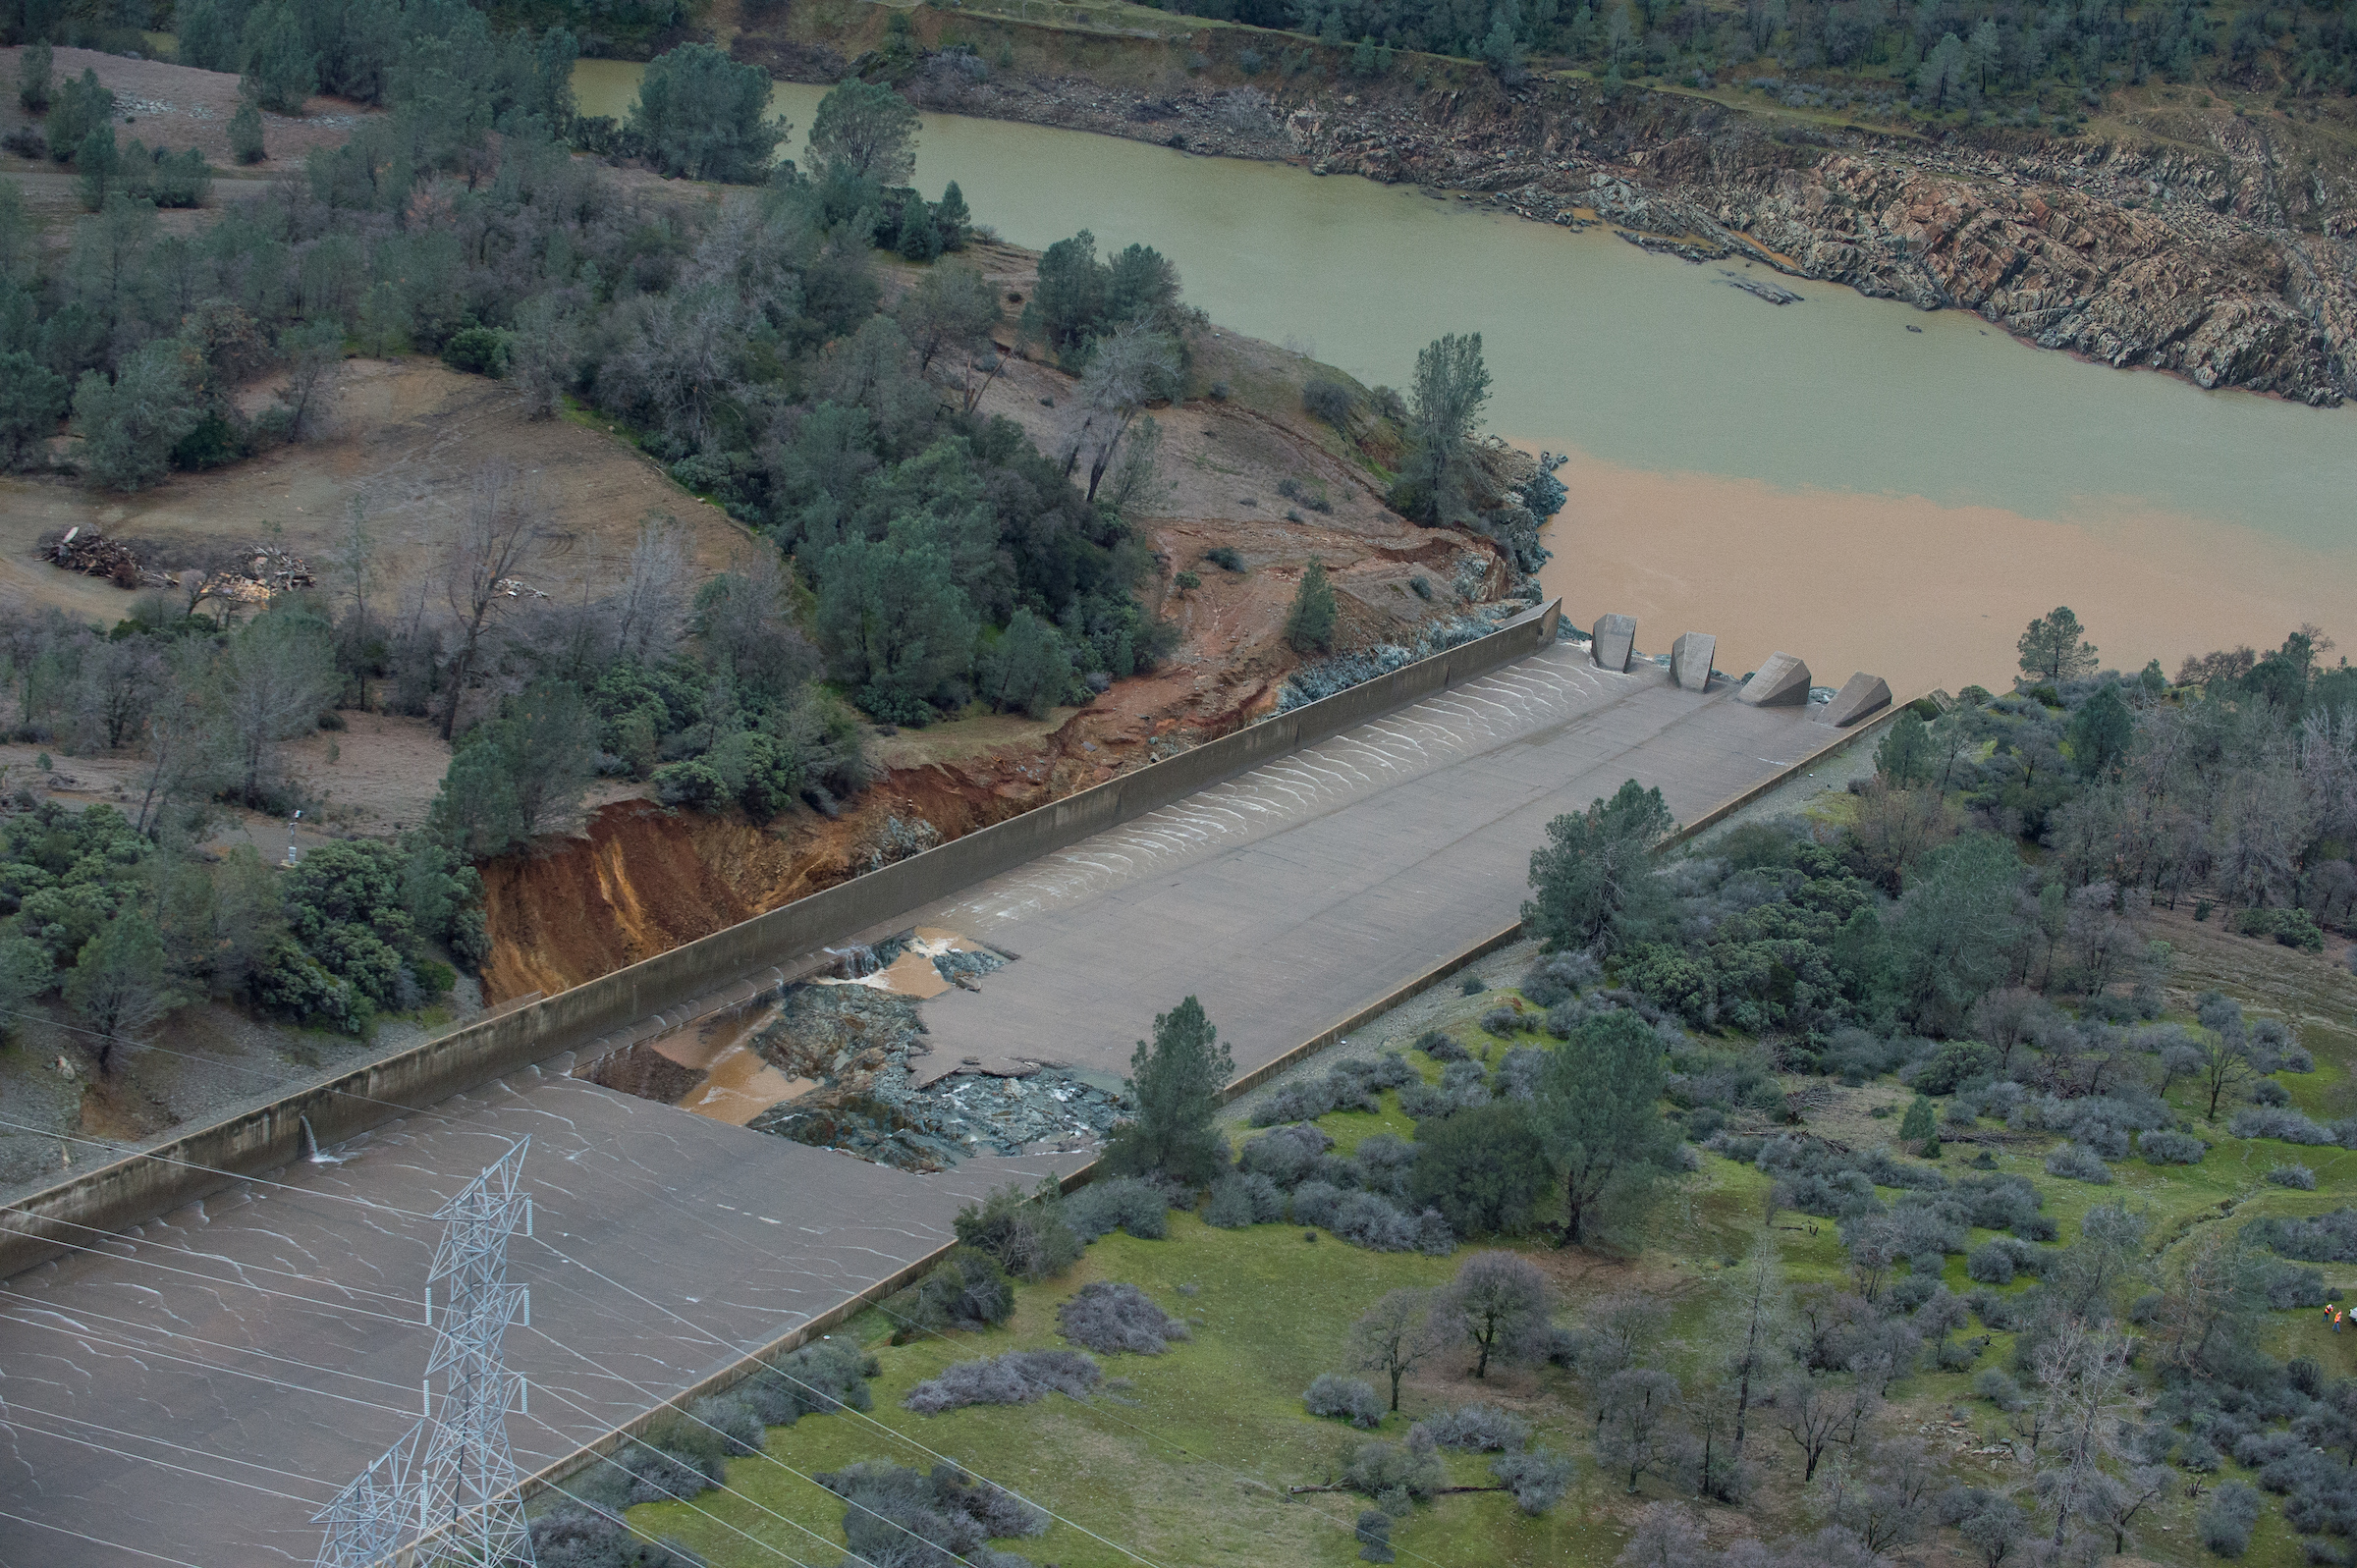 The California Department of Water Resources has suspended flows from the Oroville Dam spillway after a concrete section eroded on the middle section of the spillway. There is no anticipated threat to the dam or the public. DWR engineers are assessing the options to repair the spillway and control the reservoir water level. The Butte County facility is the tallest dam in the United States at 770 feet and is a key part of the State Water Project. Photo taken February 7, 2017. Kelly M. Grow/ California Department of Water Resources